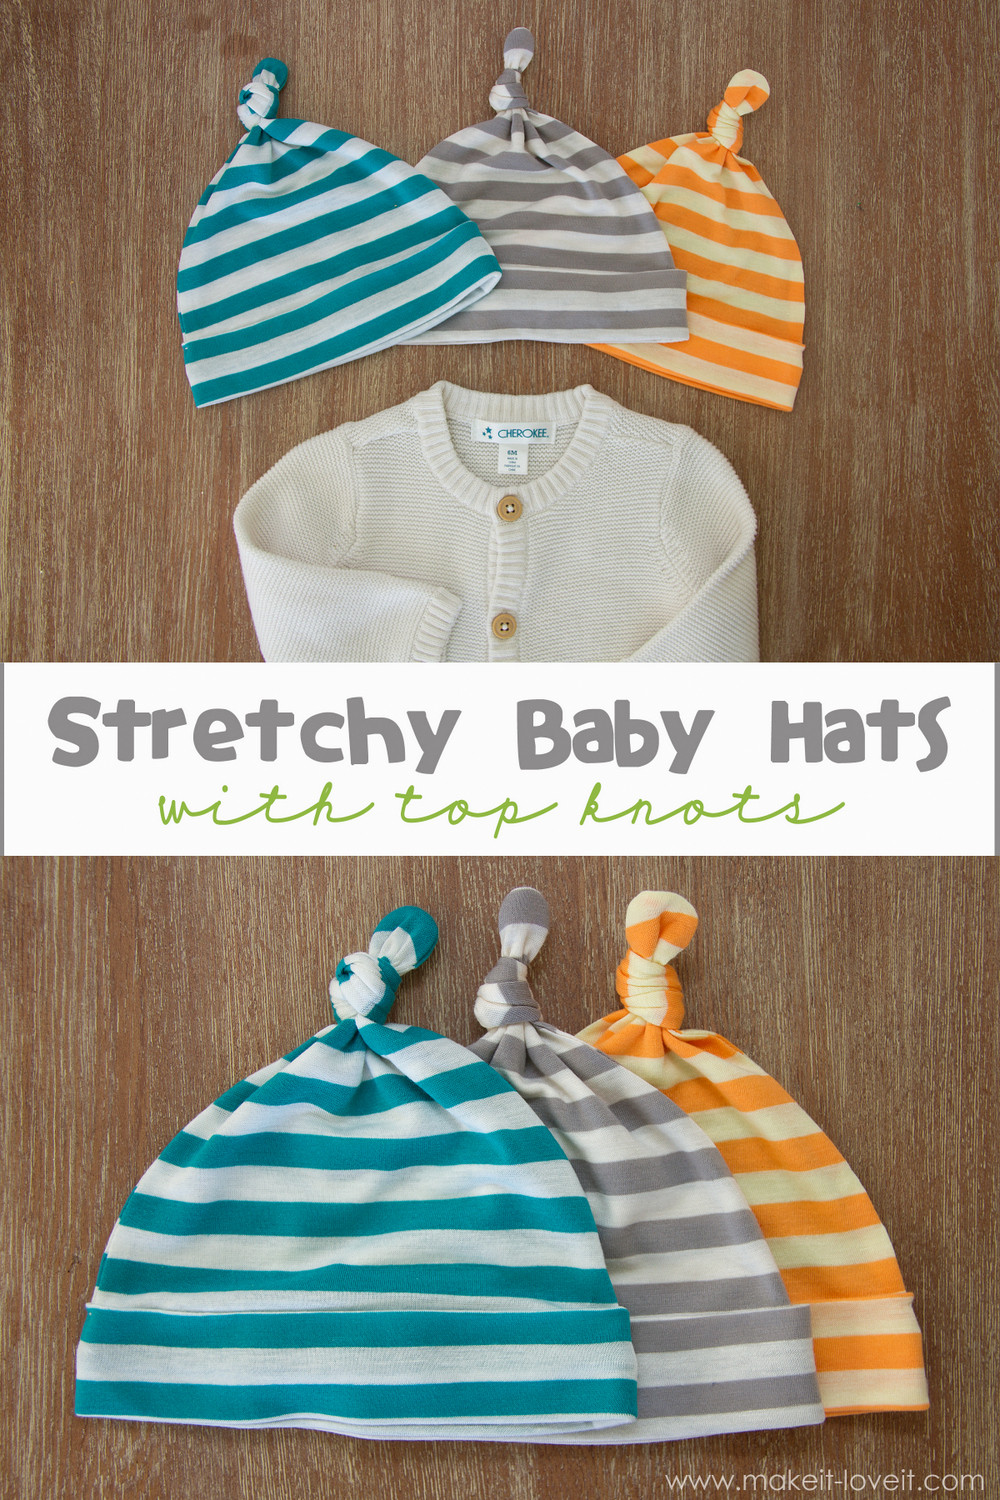 Best ideas about DIY Baby Hats . Save or Pin Stretchy Baby Hats with Top Knots template included Now.